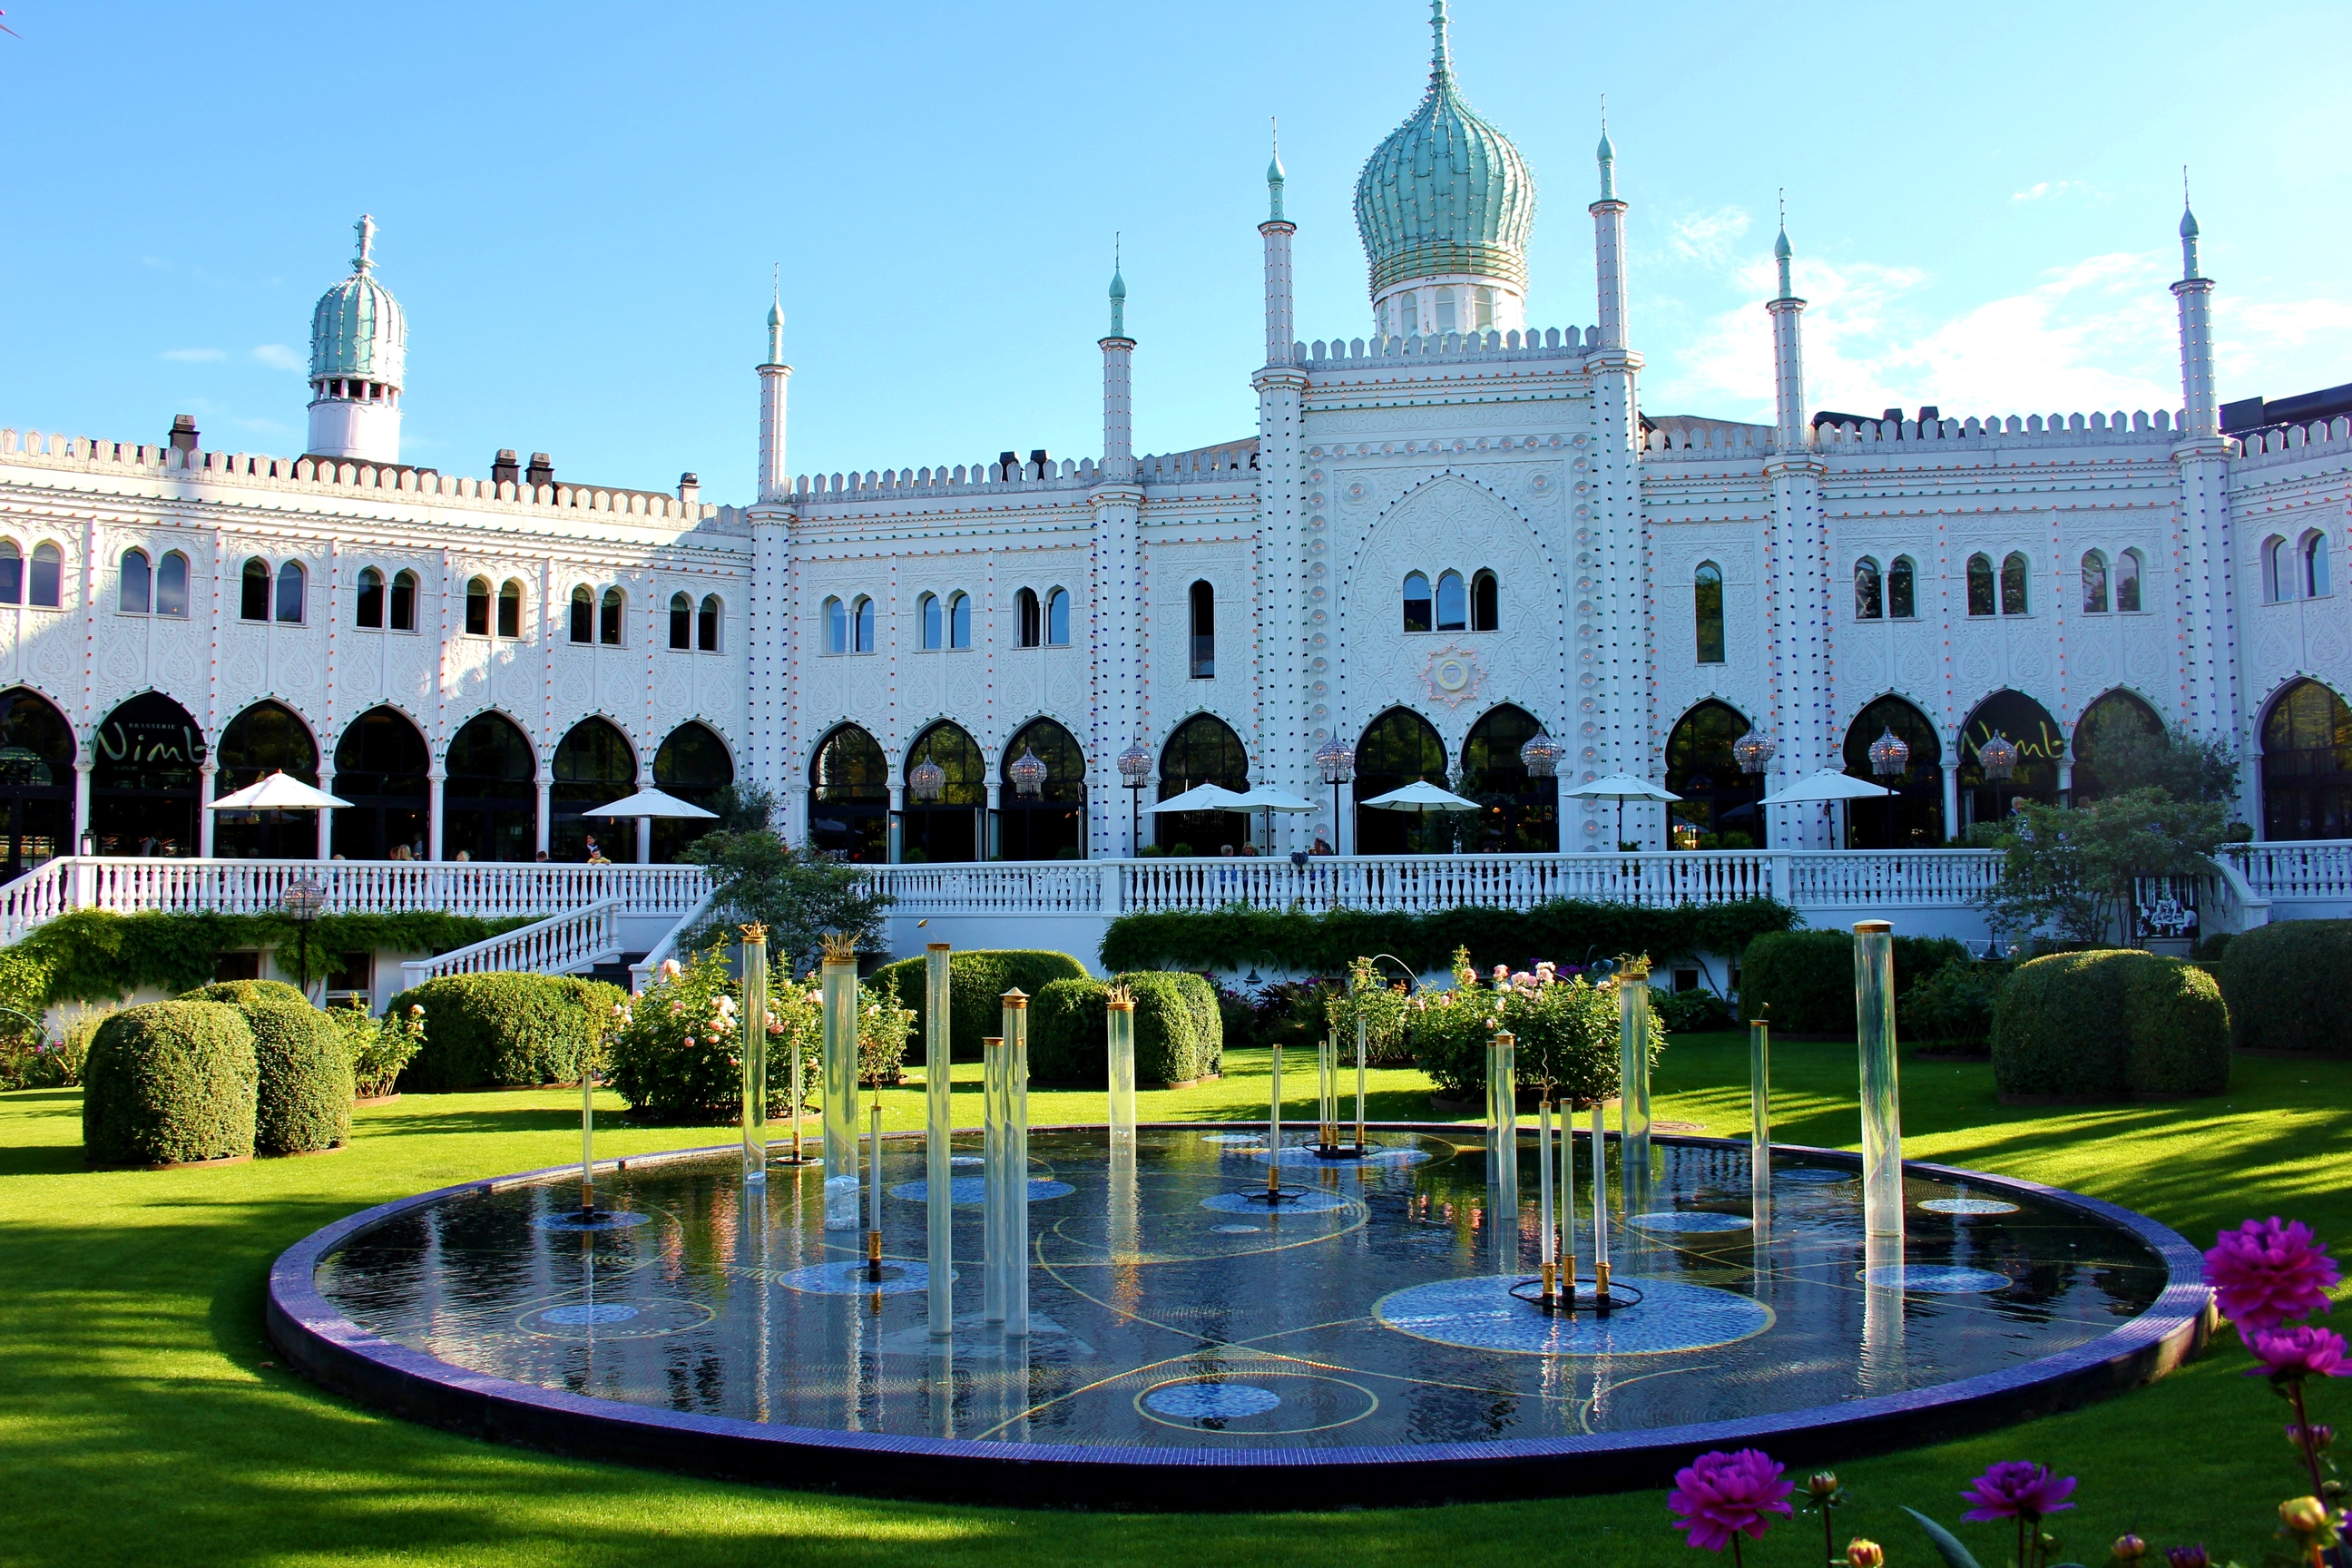 Tivoli gardens copenhagen images for Dining near at t park